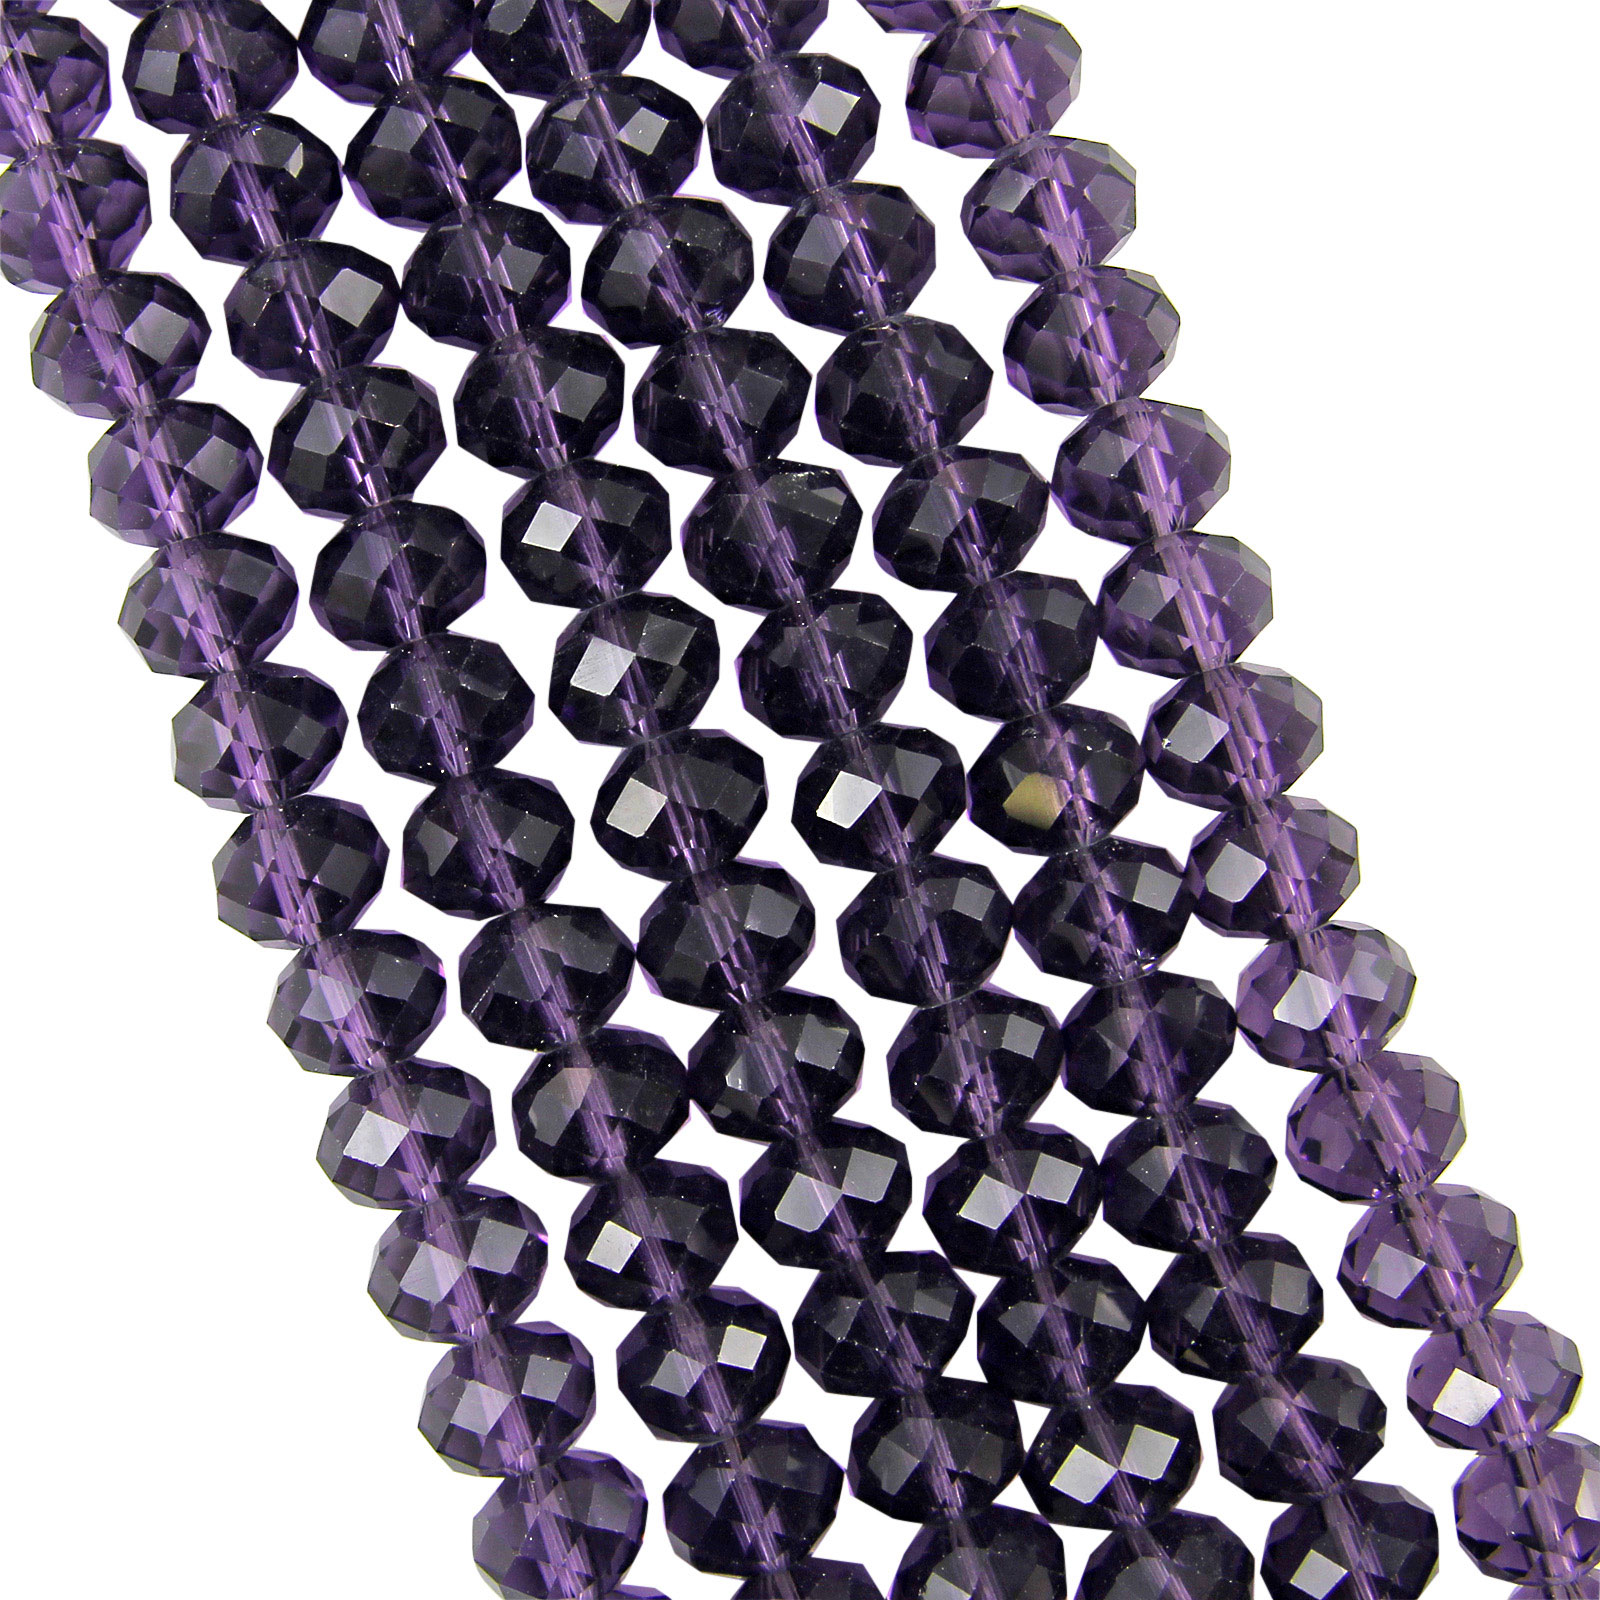 Crystal Bead Beads: FACETED RONDELLE CRYSTAL GLASS BEADS 4x3mm 6x4mm 8x6mm